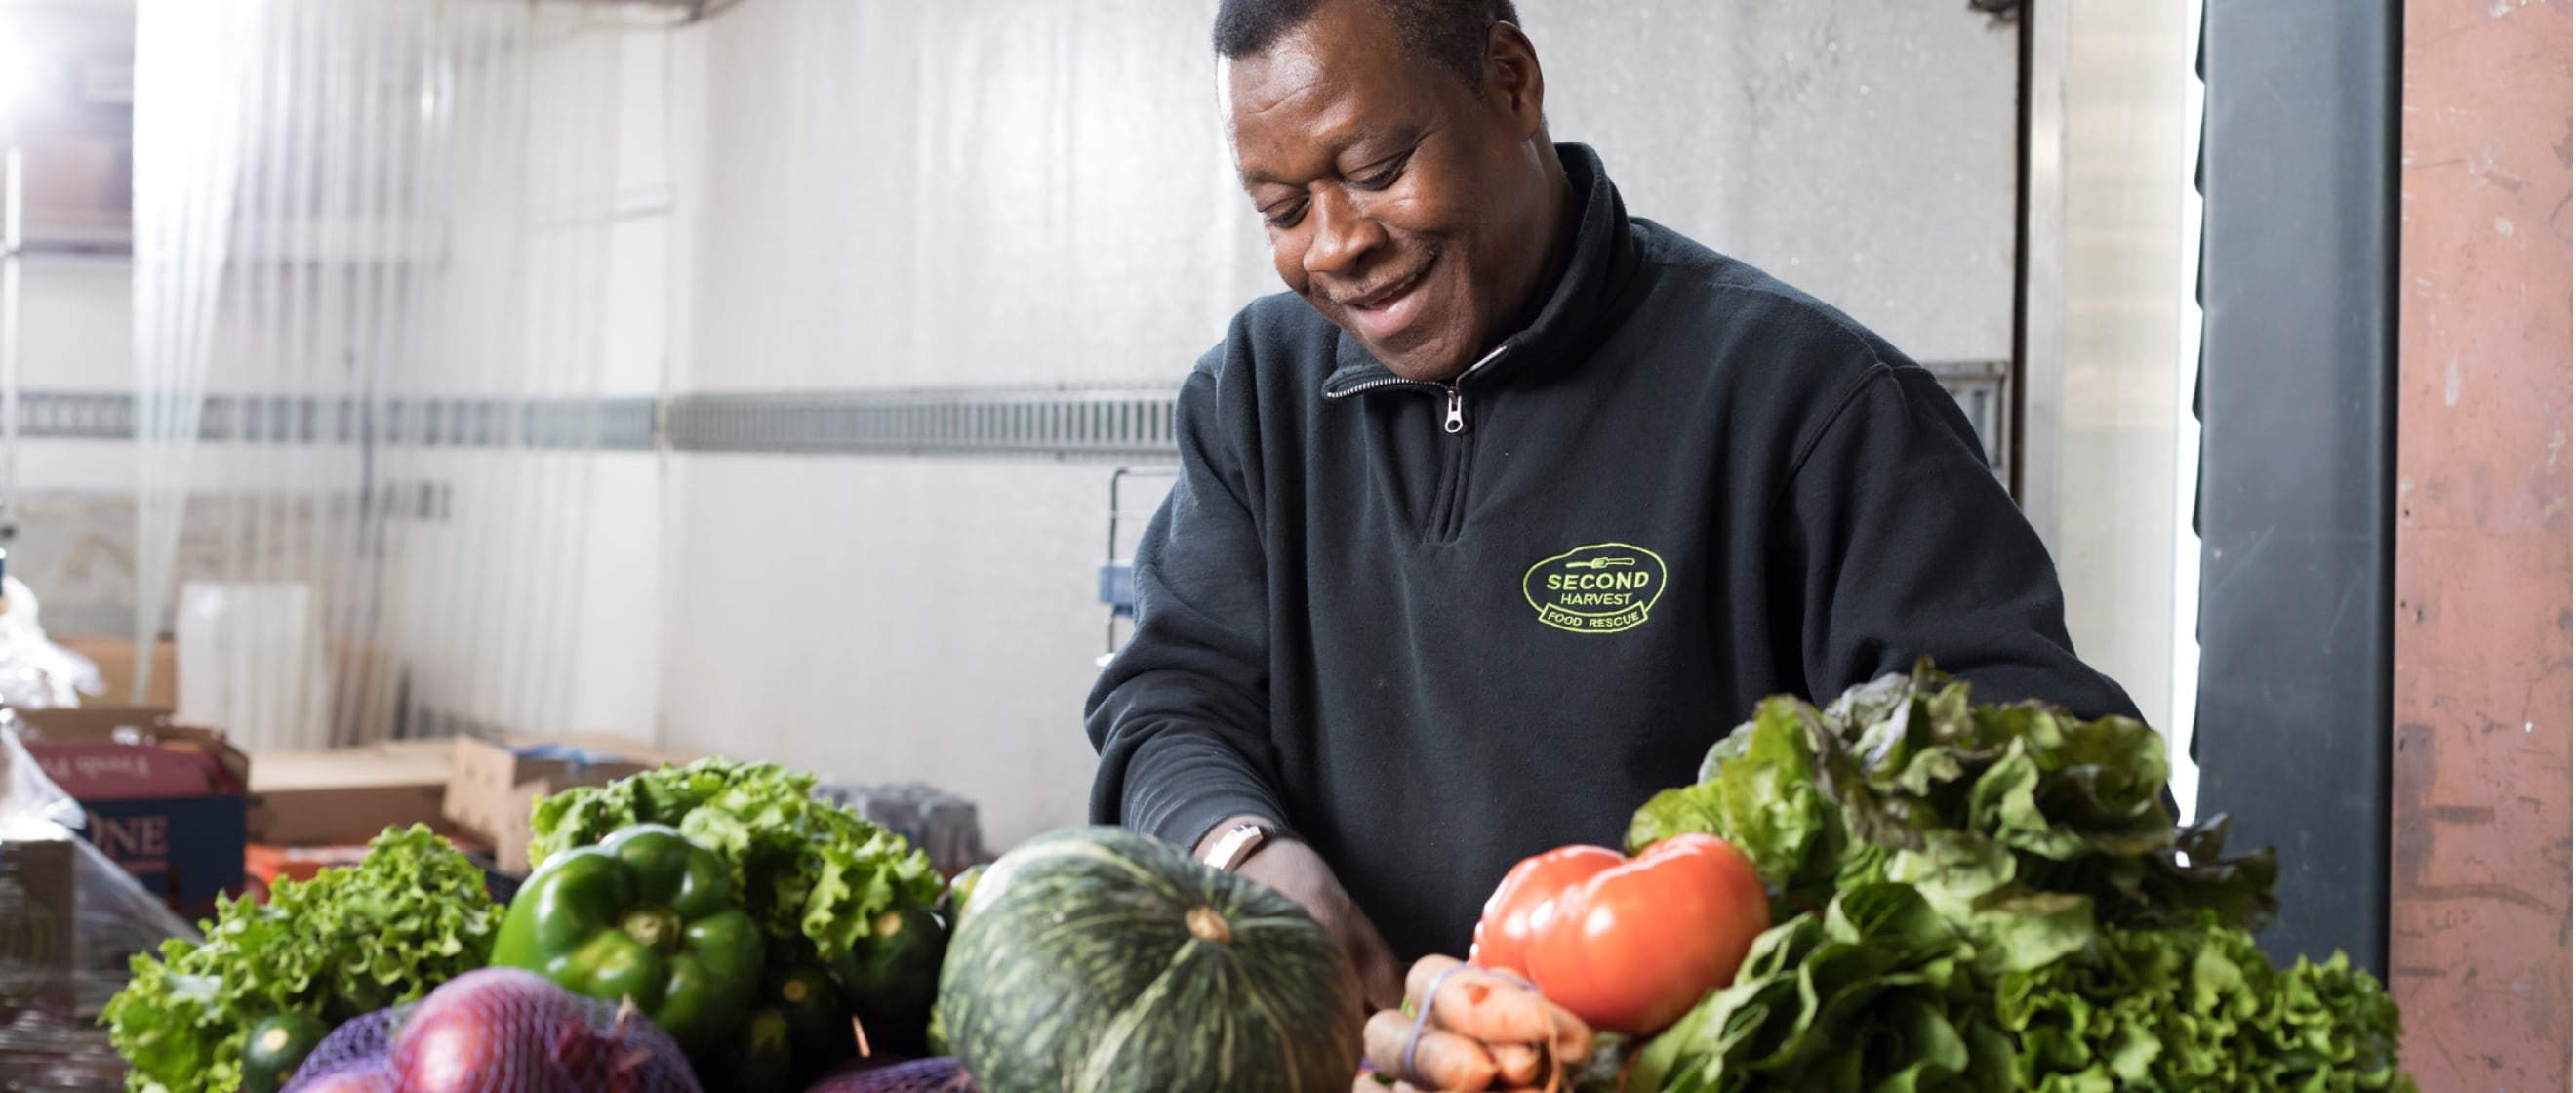 Man smiling, working with fresh produce in a warehouse.